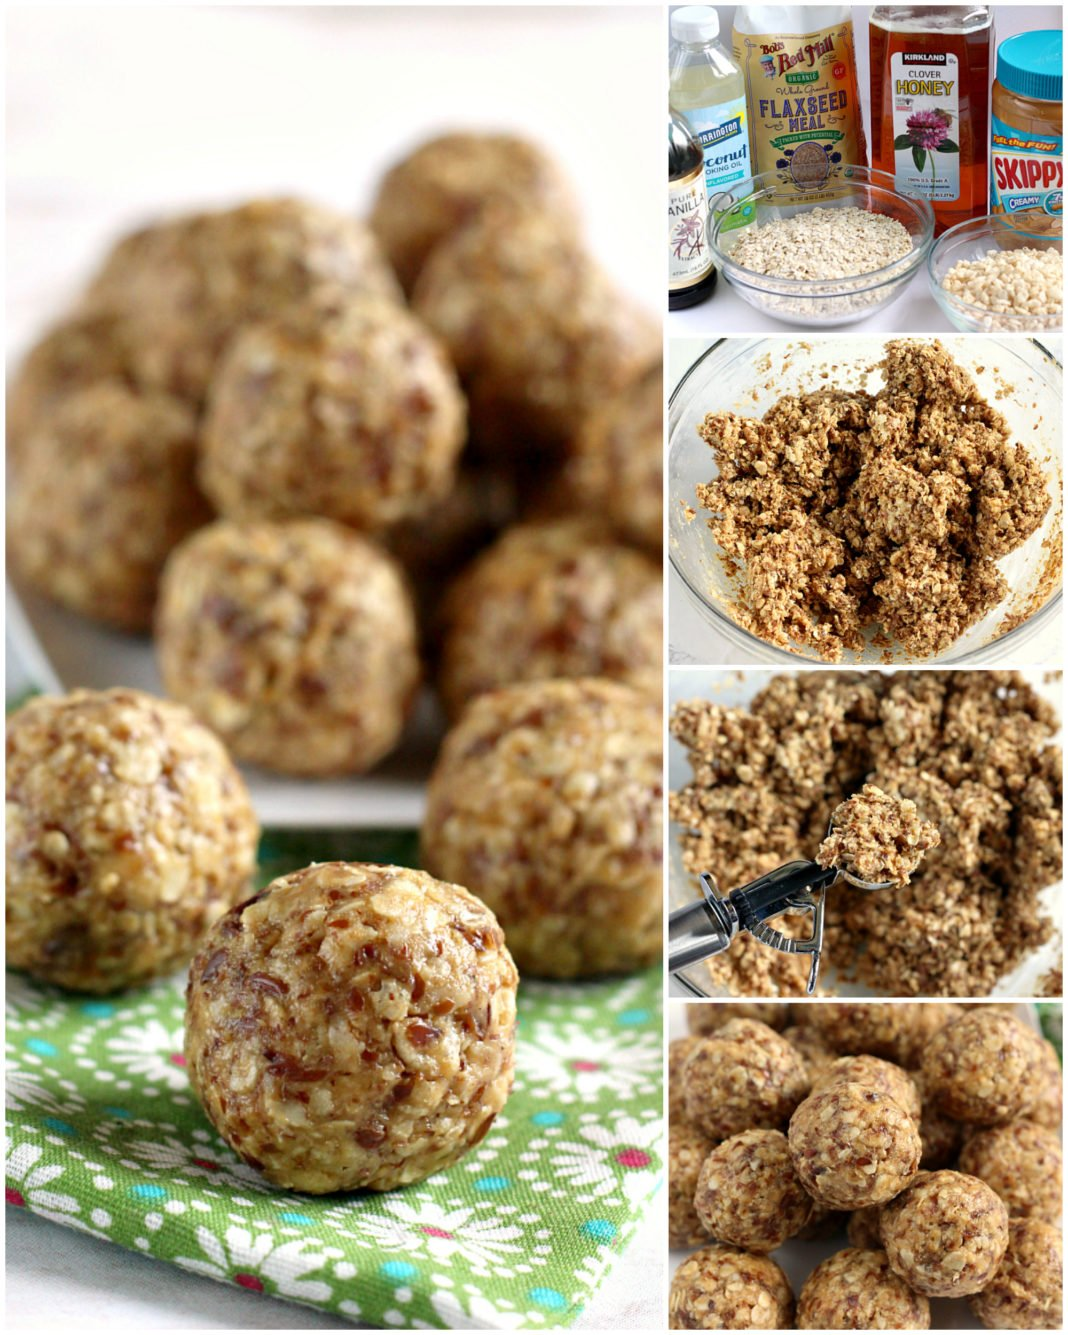 Oatmeal Peanut Butter Protein Balls are made with oats, peanut butter, honey, flaxseed, Rice Krispies, coconut oil and vanilla. These are healthy, filling and the tastiest protein ball recipe that I've ever tried!